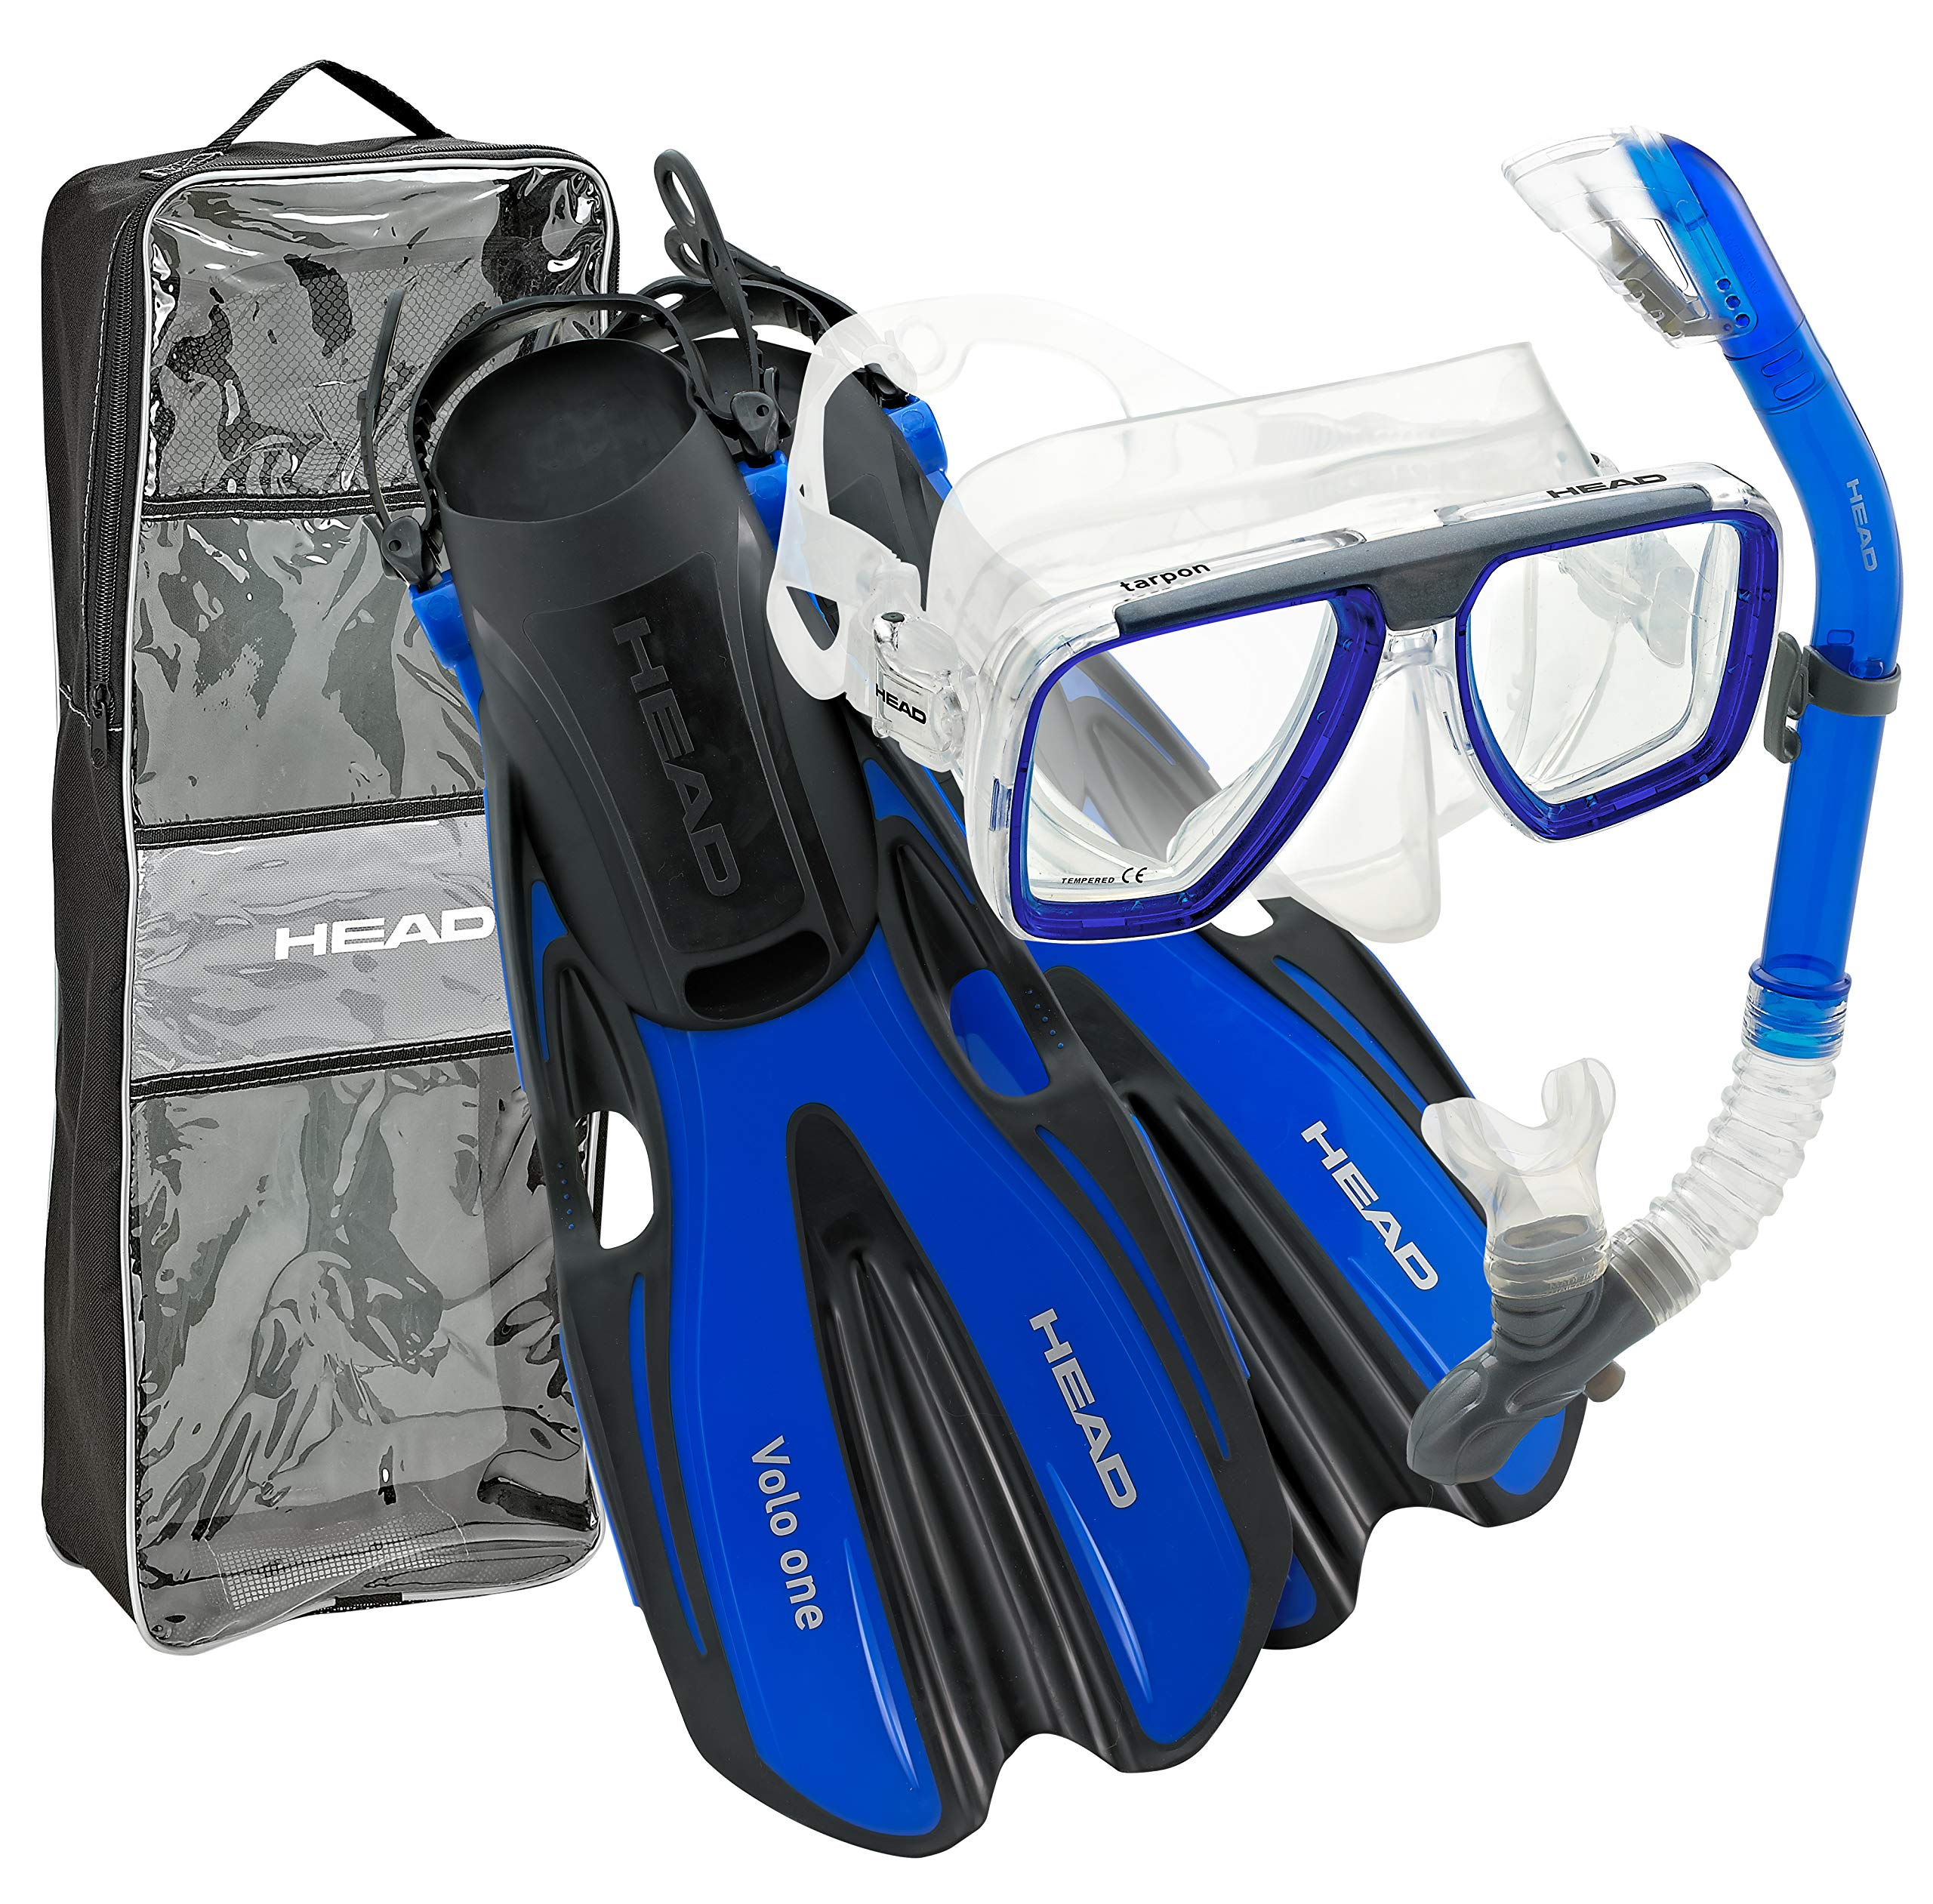 HEAD by Mares Tarpon Travel Friendly Premium Mask Fin Snorkel Set, Blue, Large, (10-13) by HEAD